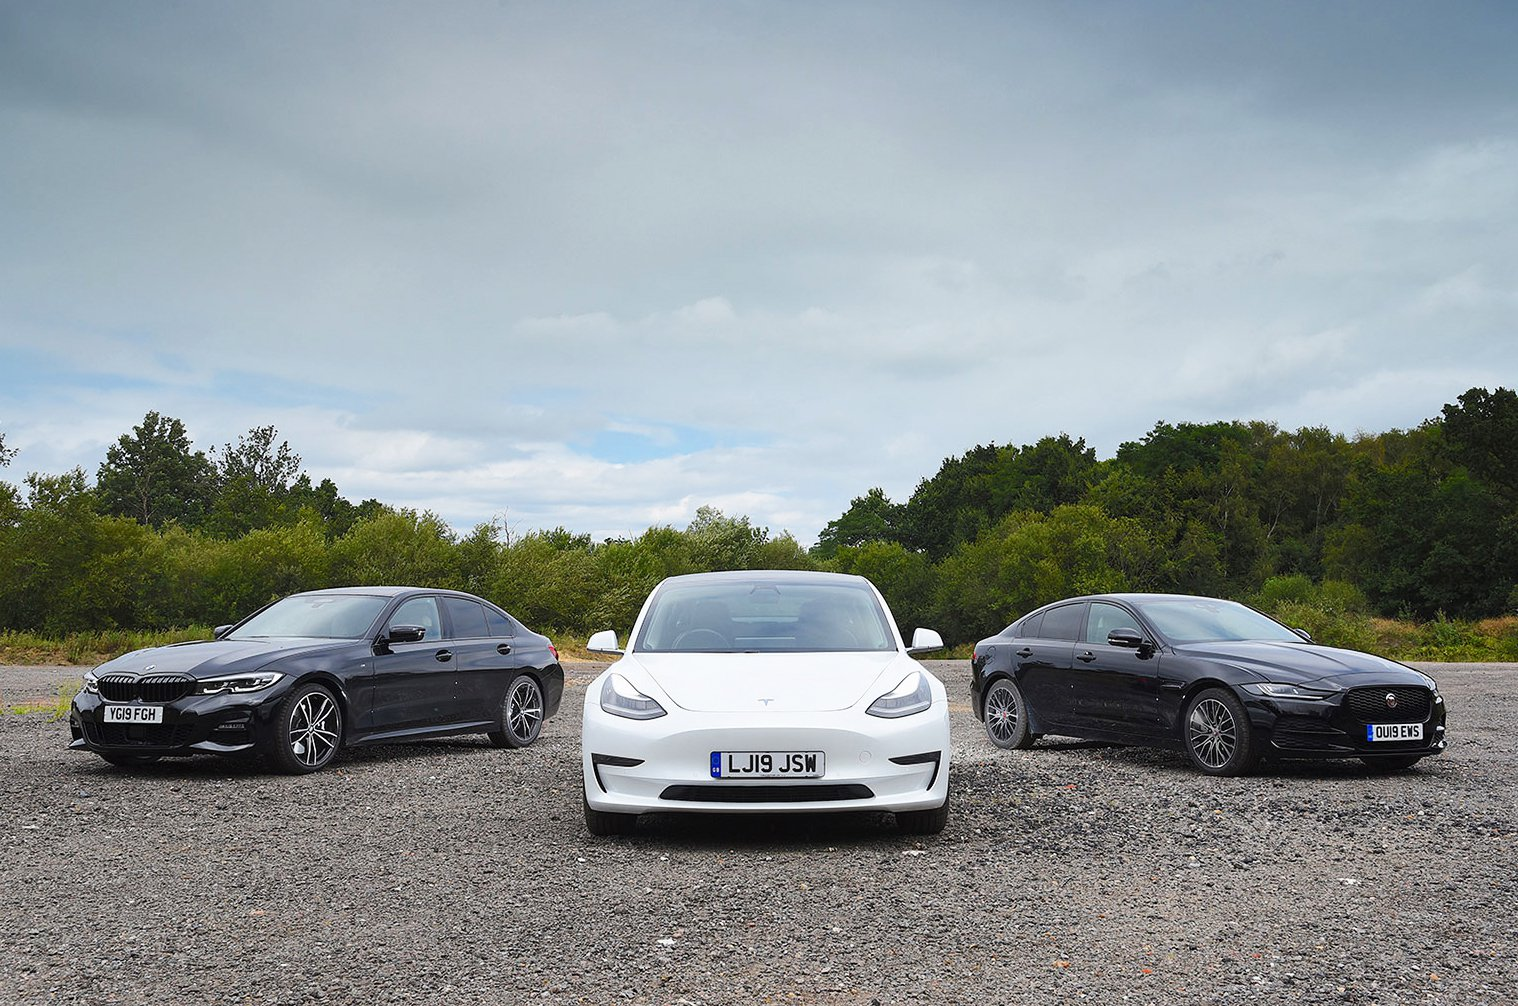 Tesla Model 3 parked with BMW 3 Series and Jaguar XE